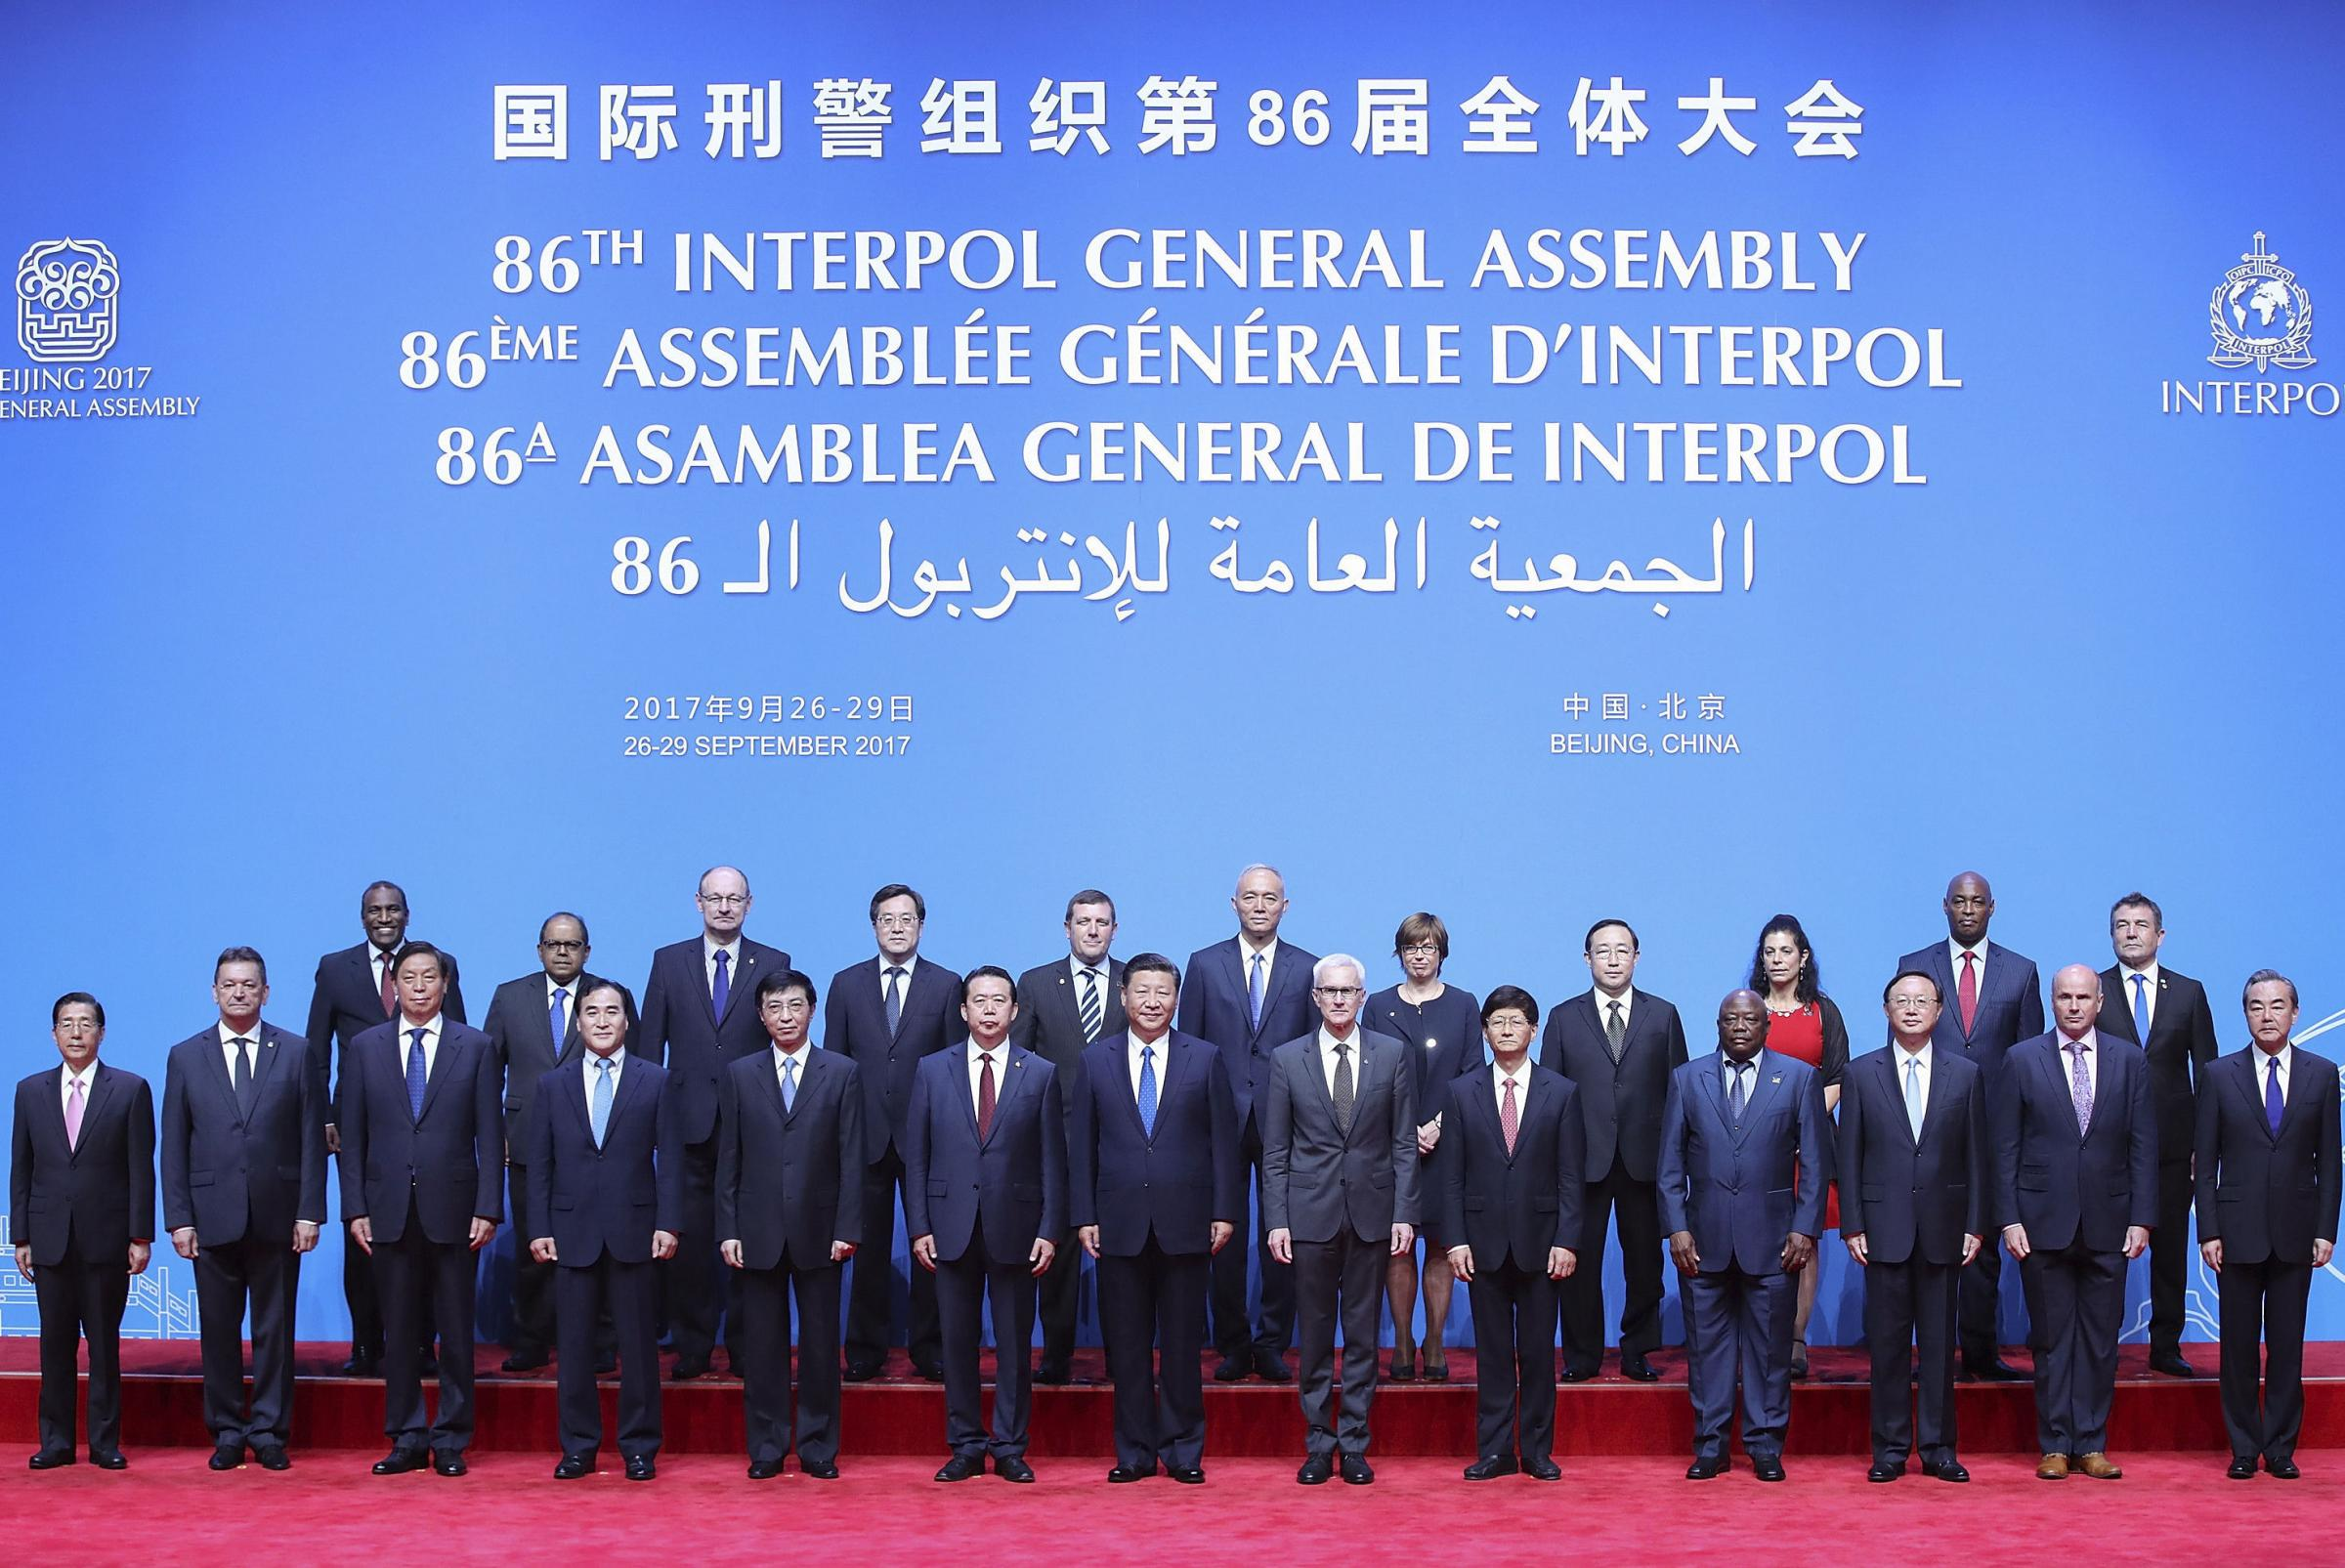 Chinese President Xi Jinping, front centre, poses with, among others, Interpol officials before the Interpol General Assembly. Photograph: AP